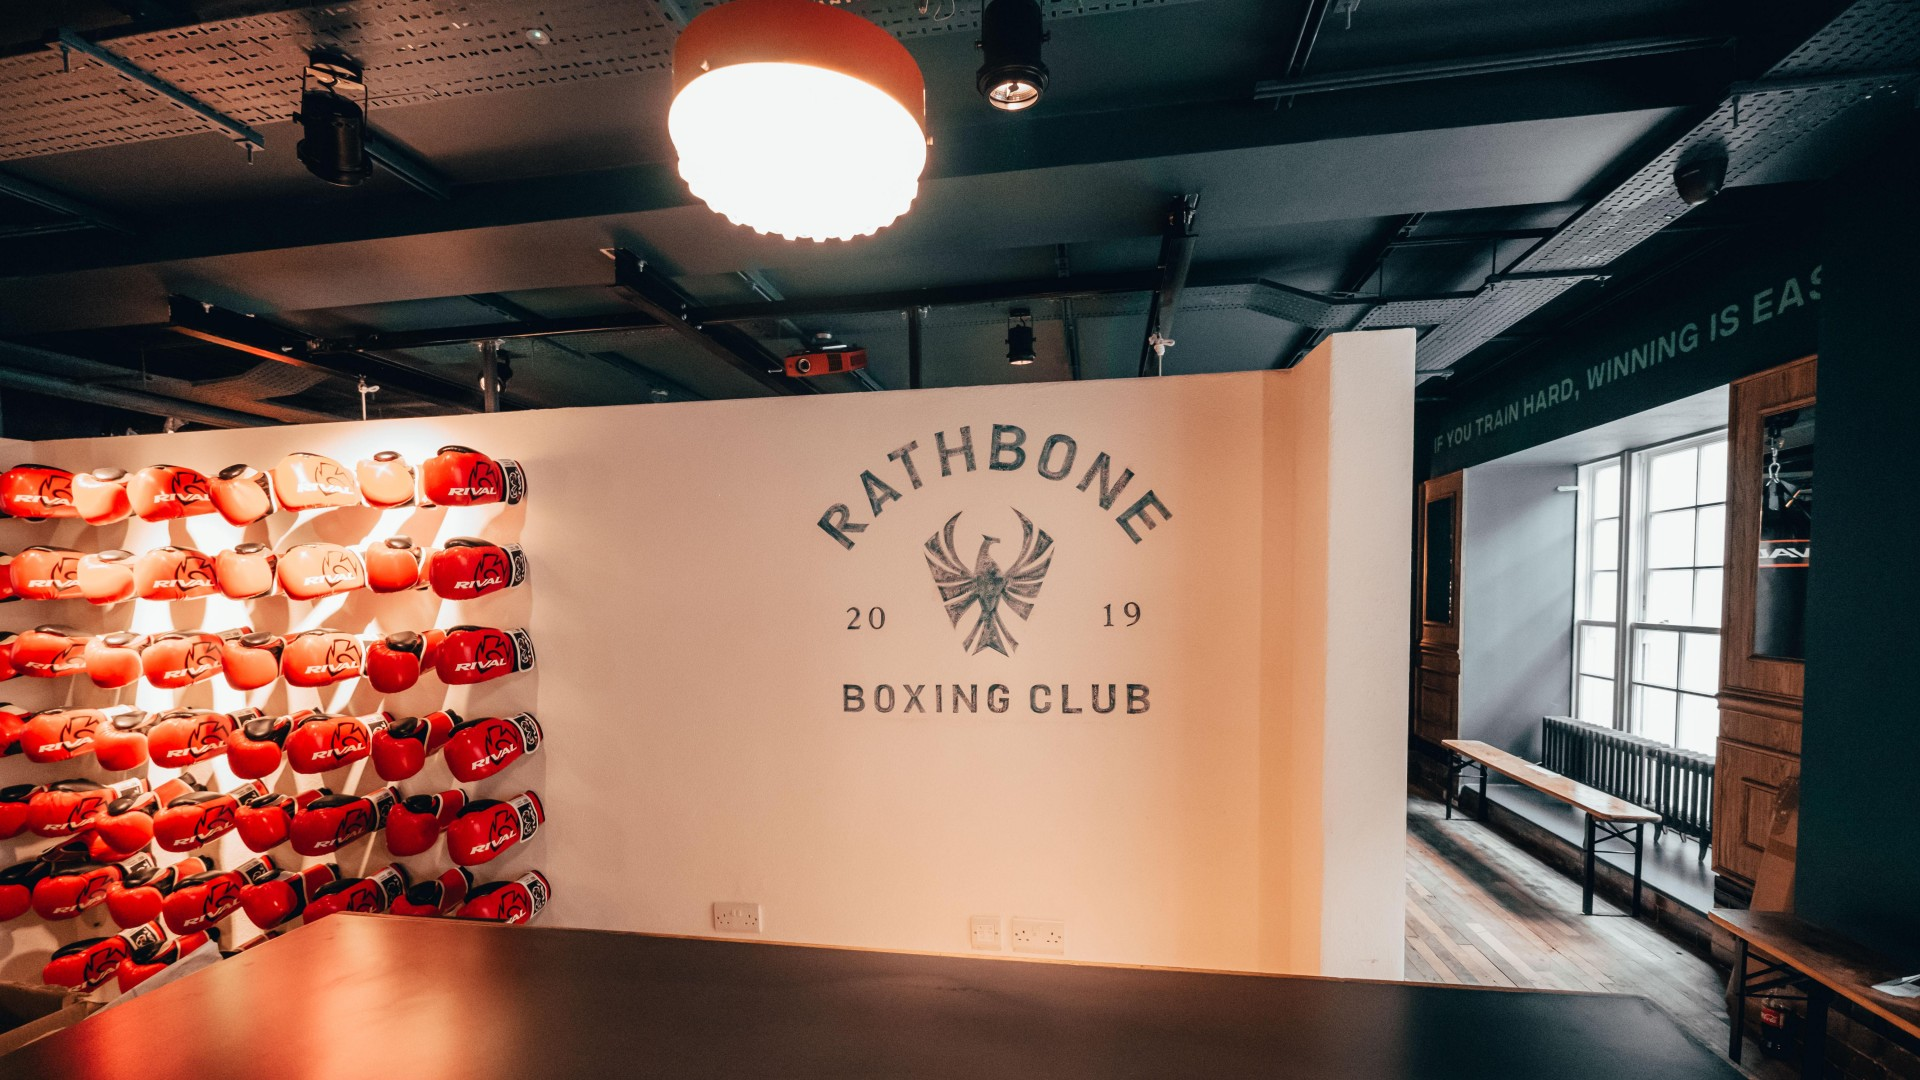 Rathbone Boxing Club RBC Interior shot no people